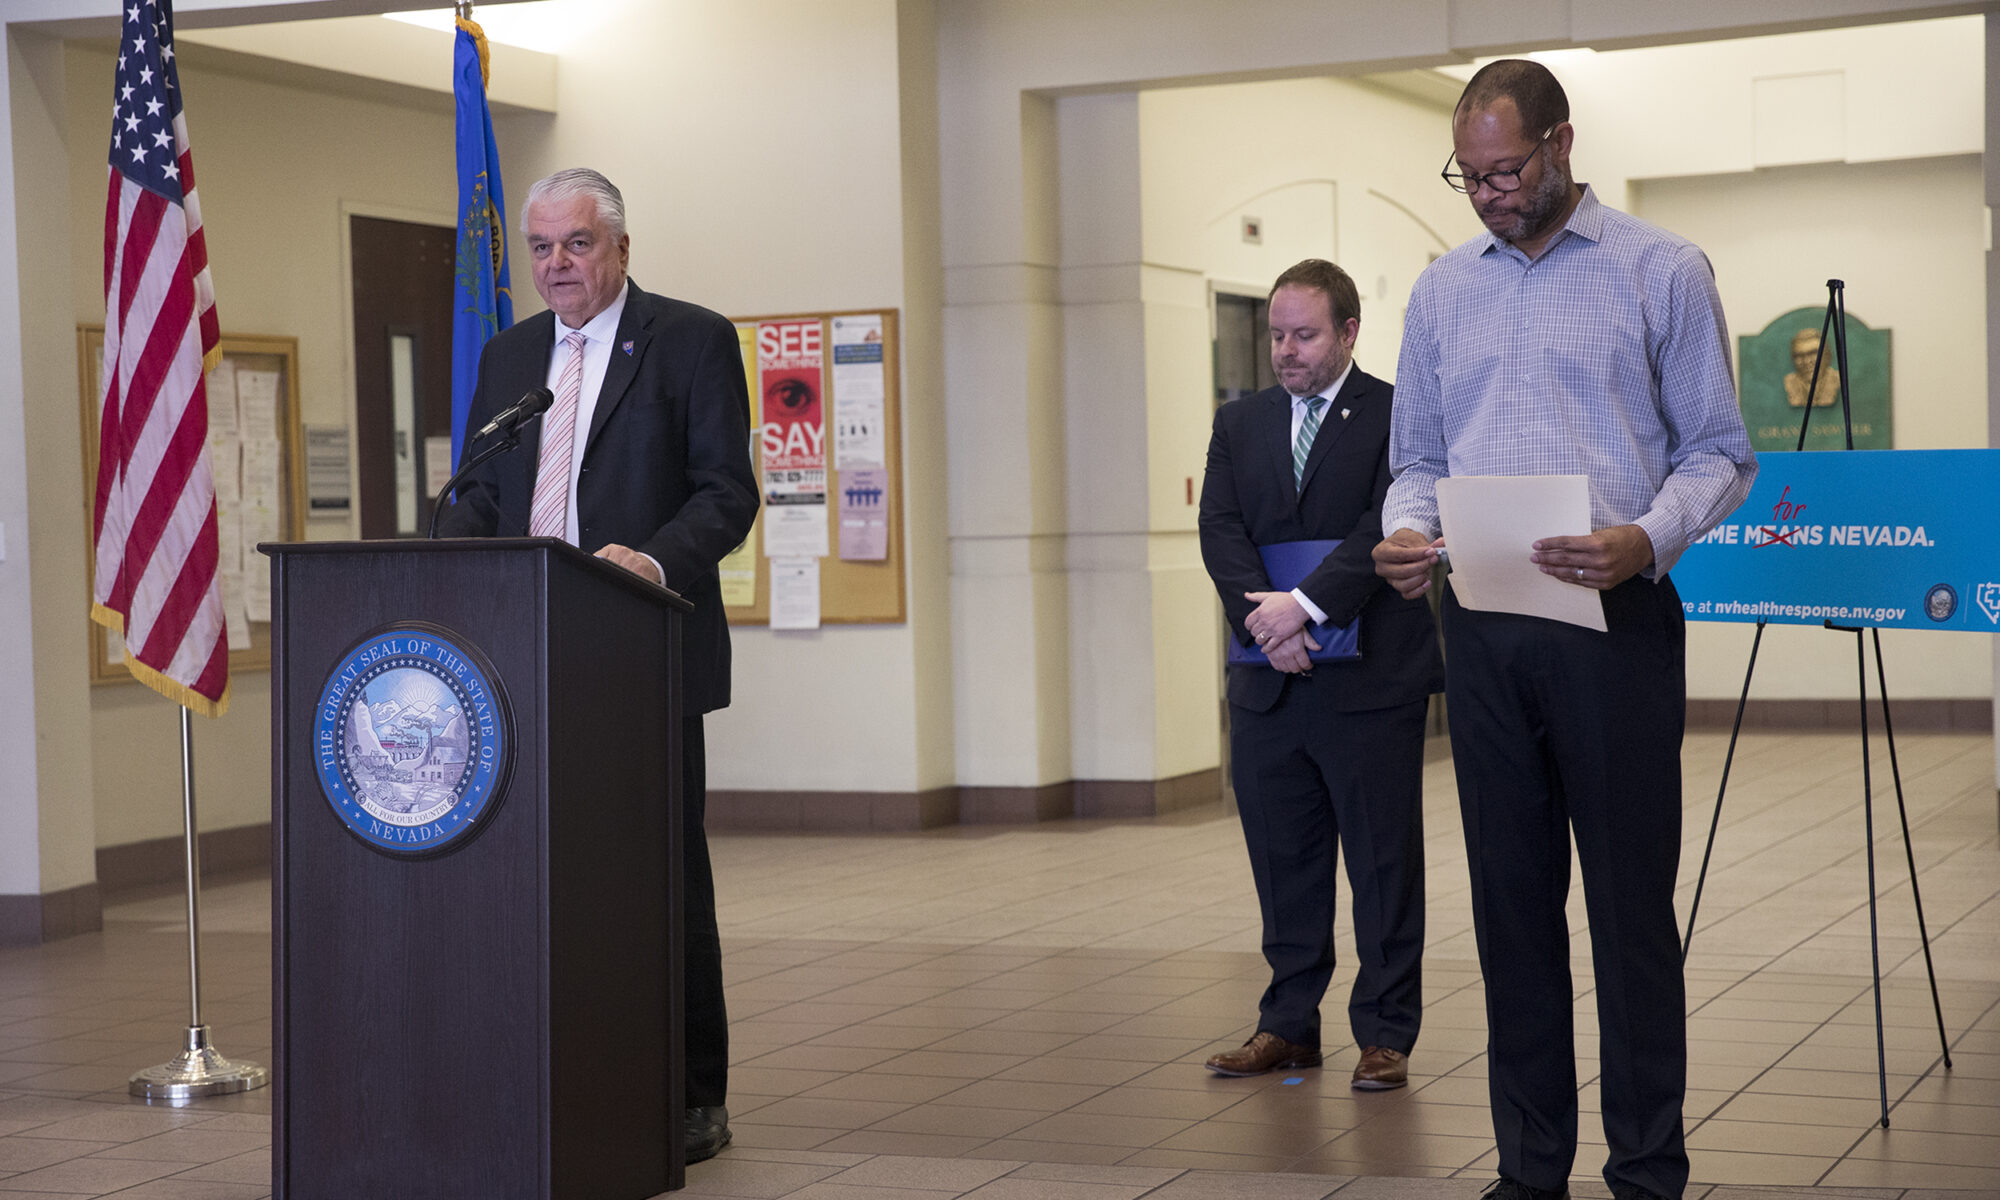 Gov. Steve Sisolak stands behind a podium at a press conference, alongside Treasurer Zach Conine and Attorney General Aaron Ford.